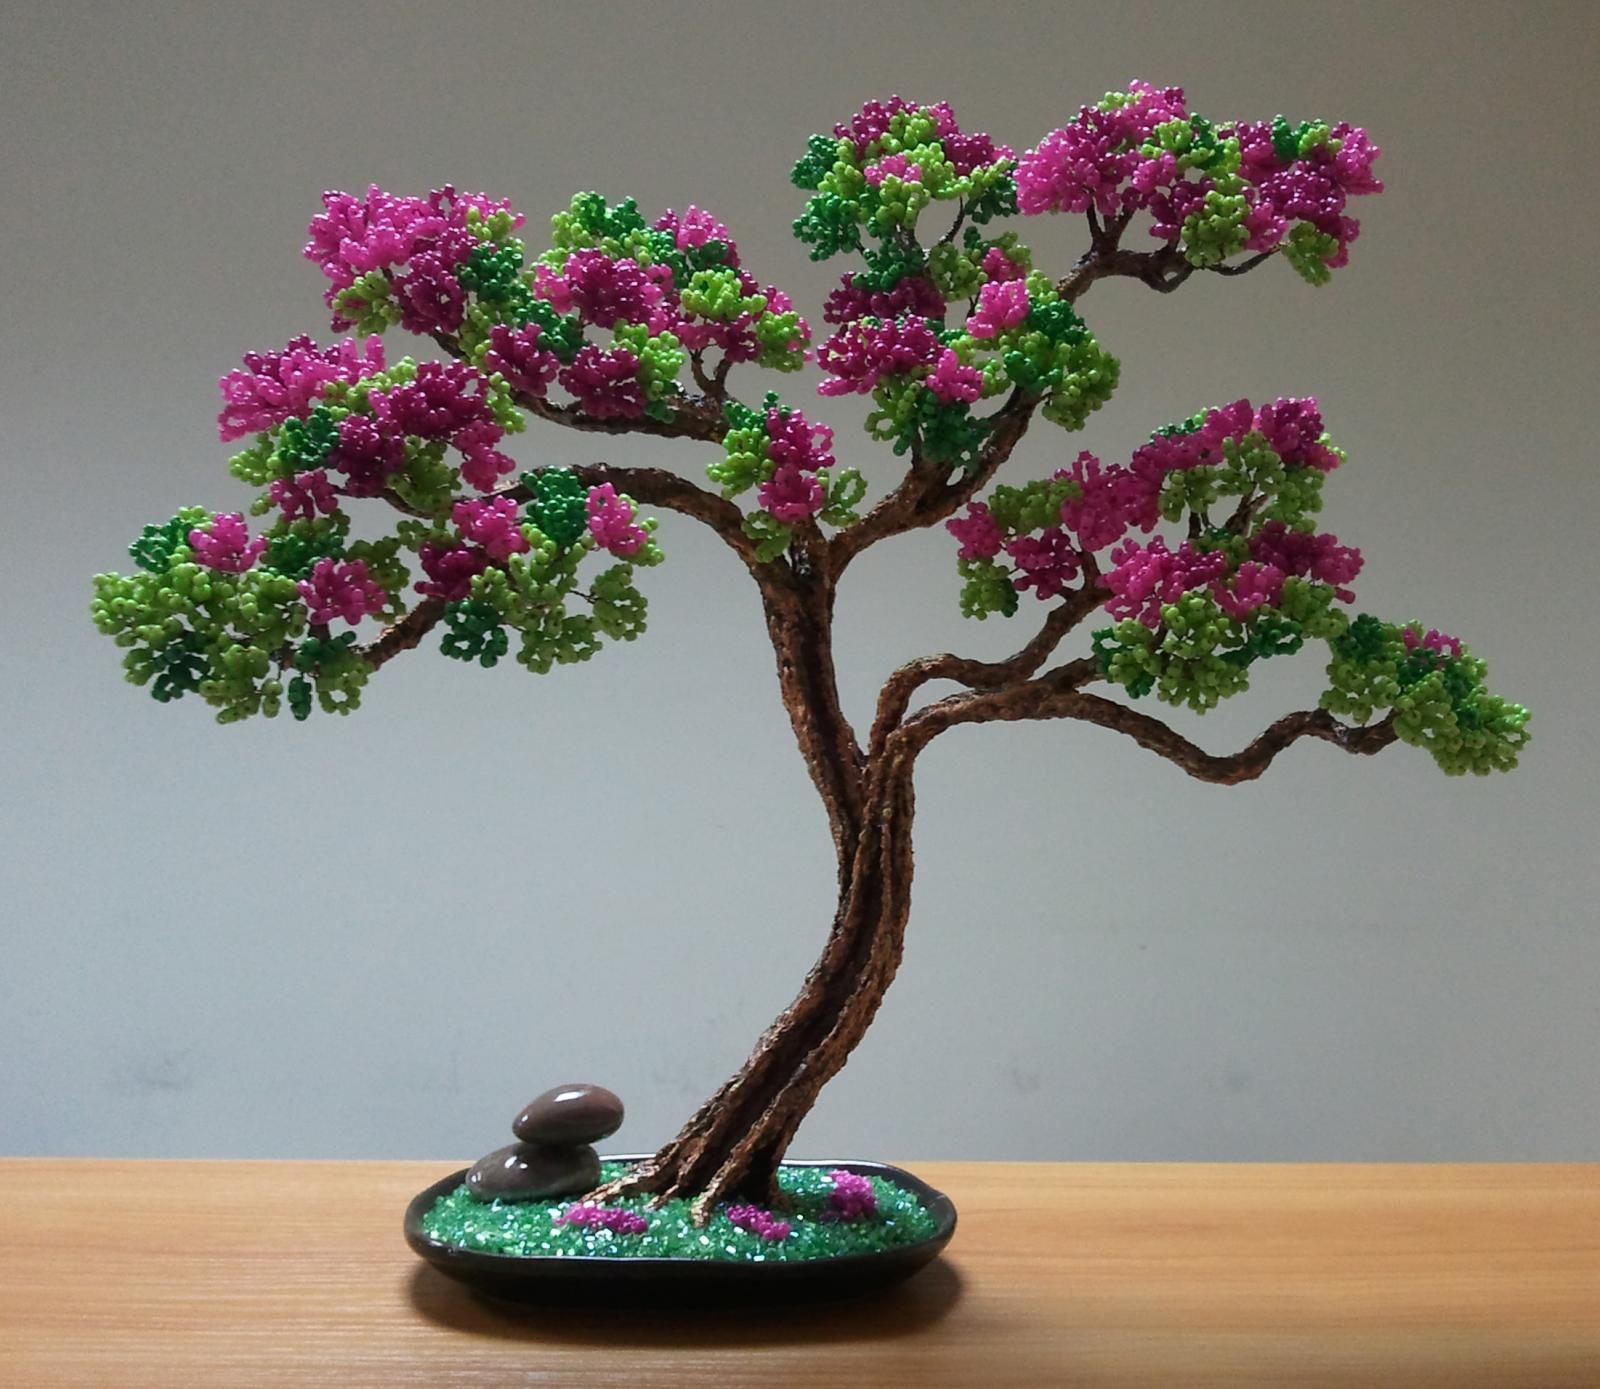 Blooming tree | biser.info - all about beads and beaded works ...